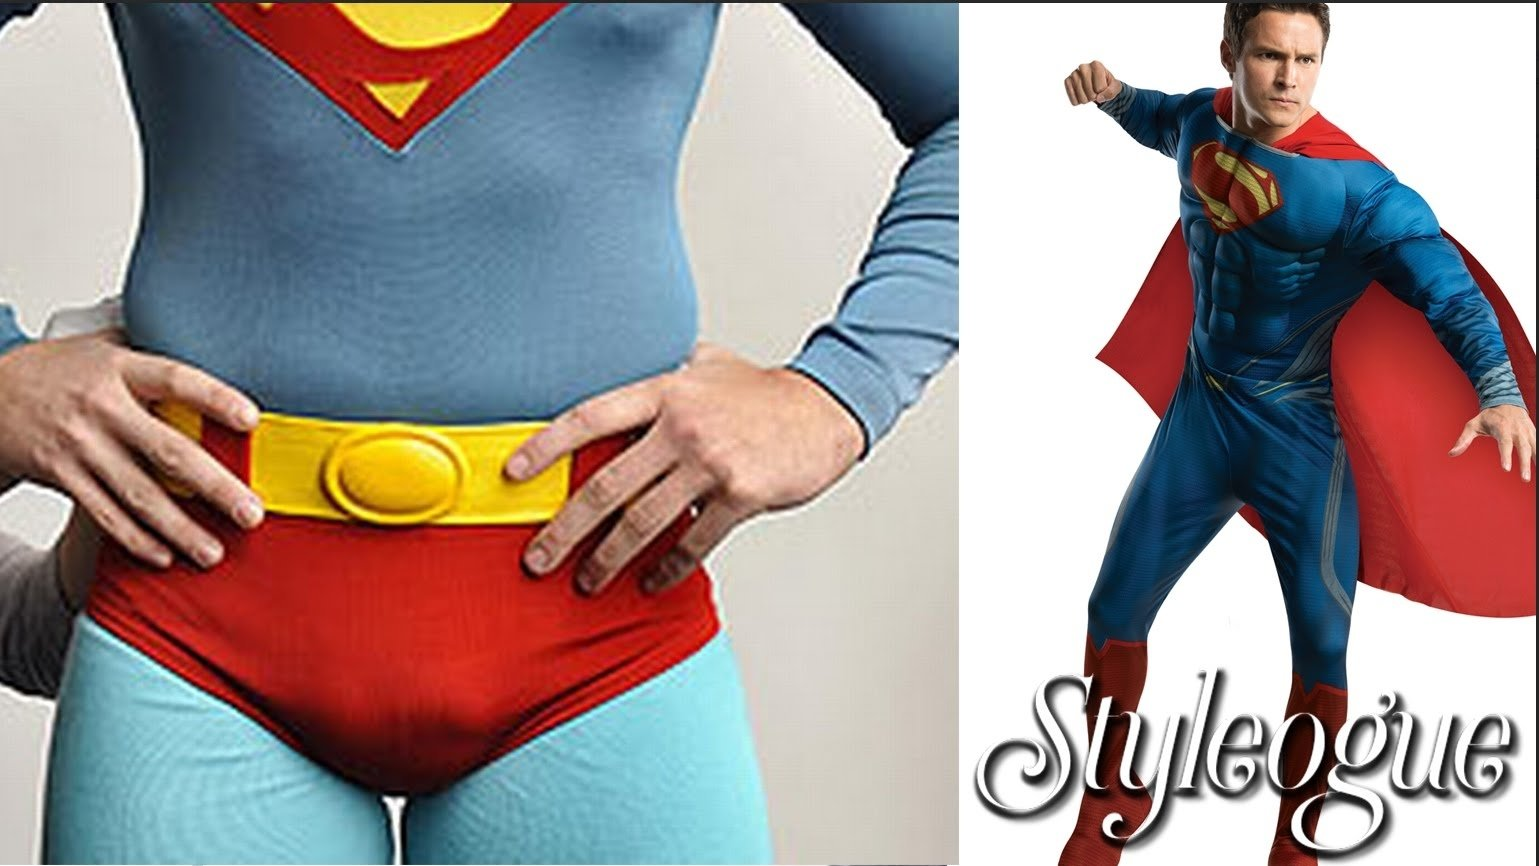 10 Fashionable Made Up Superhero Costume Ideas Home Made Superhero Outfits Halloween Diy Youtube Make A Sc 1 St Unique Ideas 2018  sc 1 st  Germanpascual.Com & Diy Superhero Costume Ideas u0026 Superhero Little Girl Costume Images ...